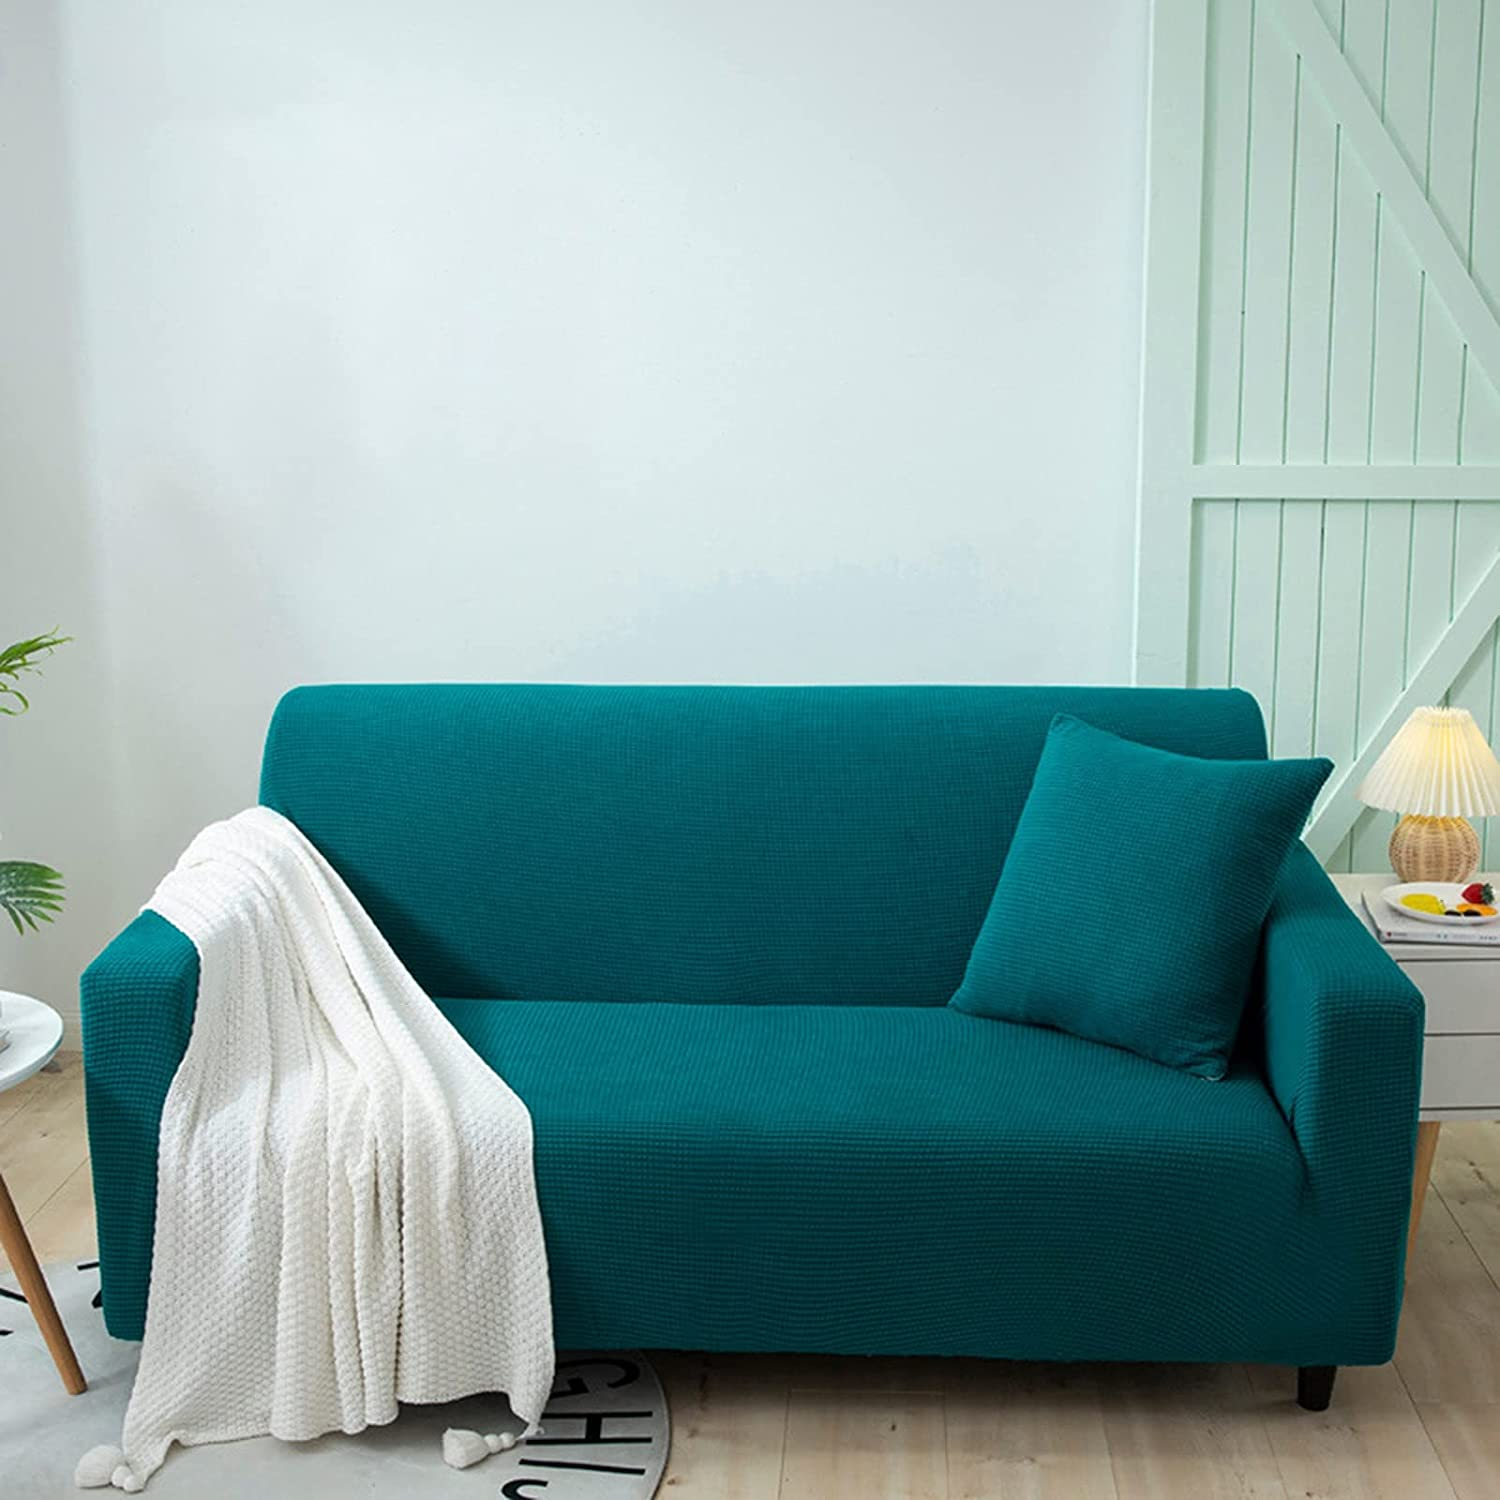 ZYZCJT shipfree Couch Cover - 100% Slipcover lowest price Sofa Nonslip